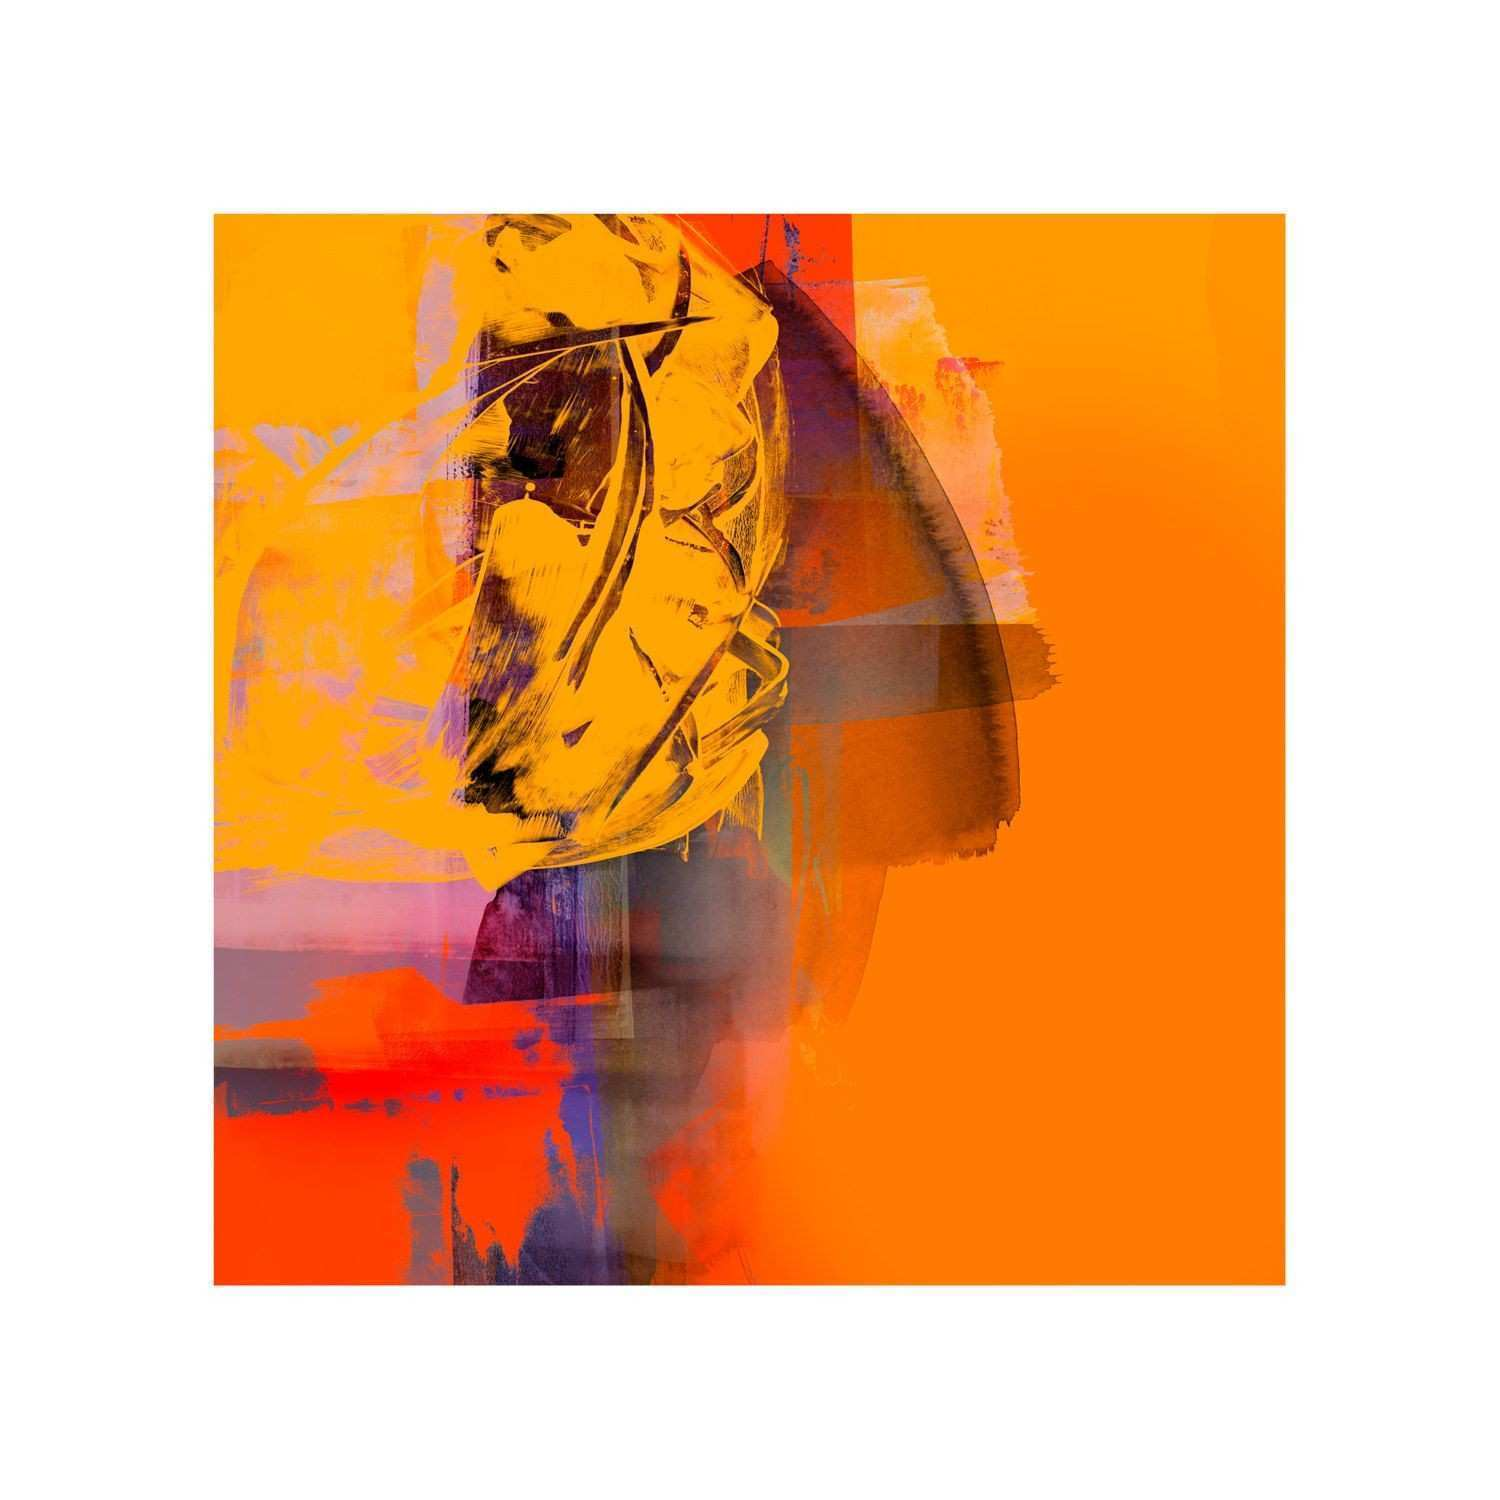 Vibrant Orange Abstract Art Print Inspired By Abstract